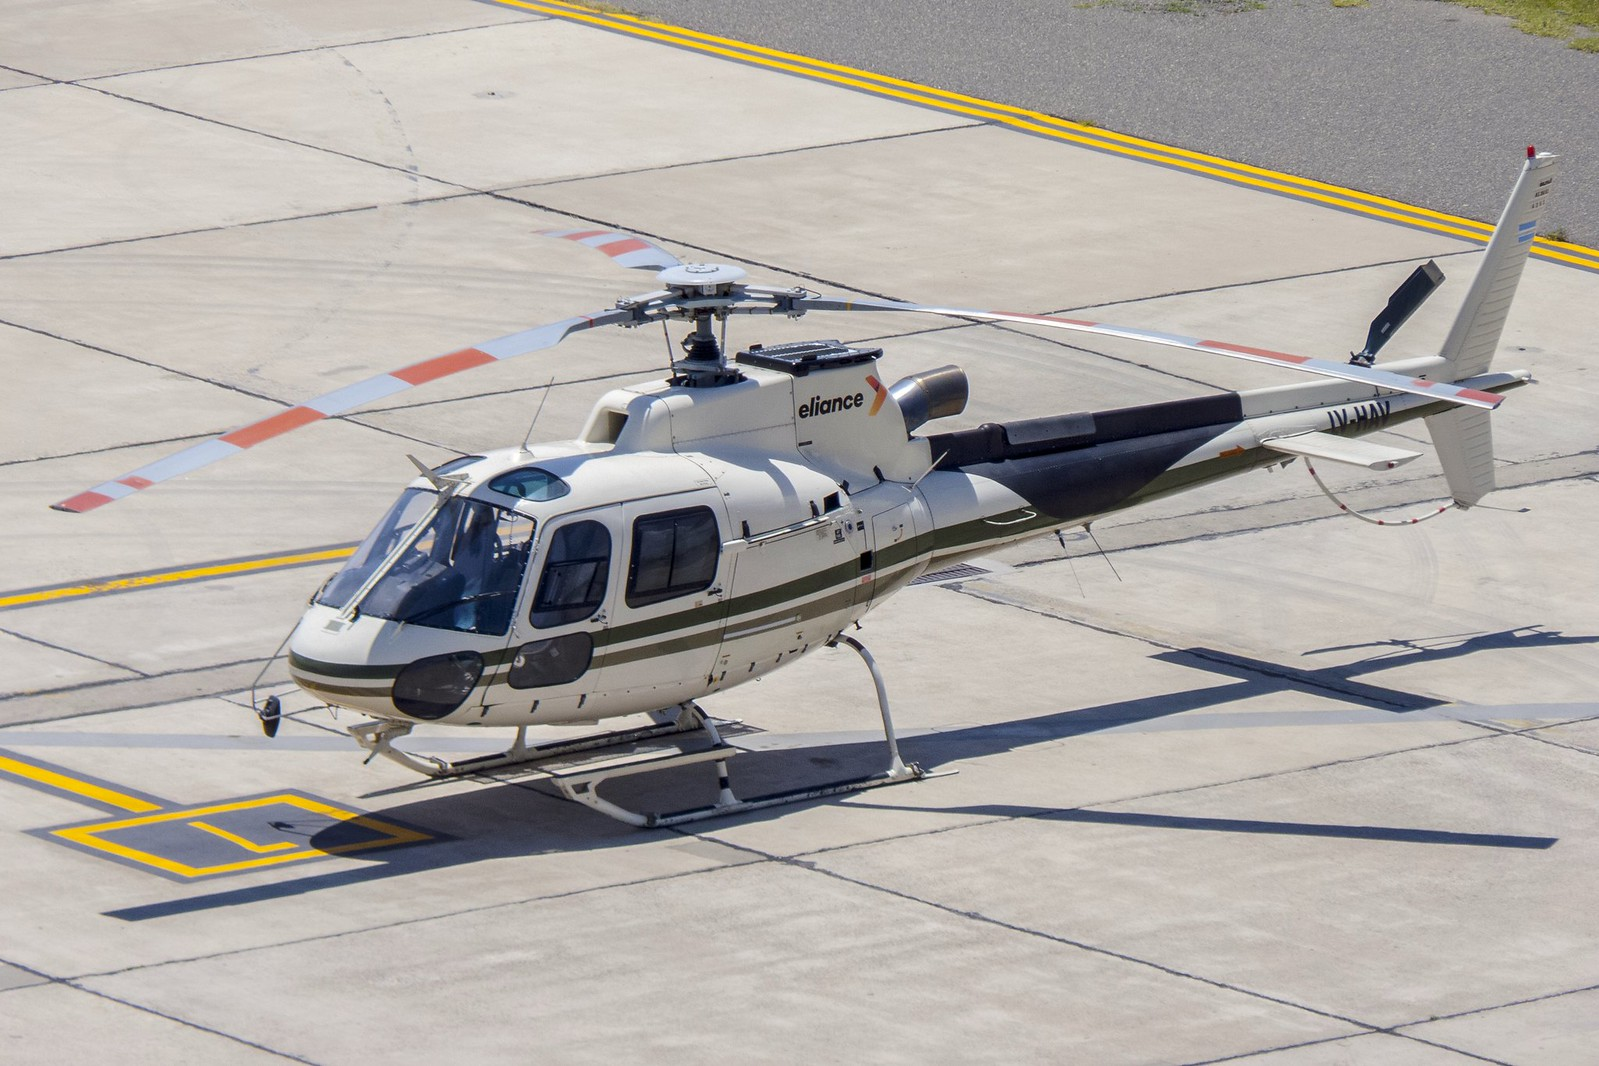 LV-HAV - Eurocopter AS350B3, Panasonic DMC-FZ35